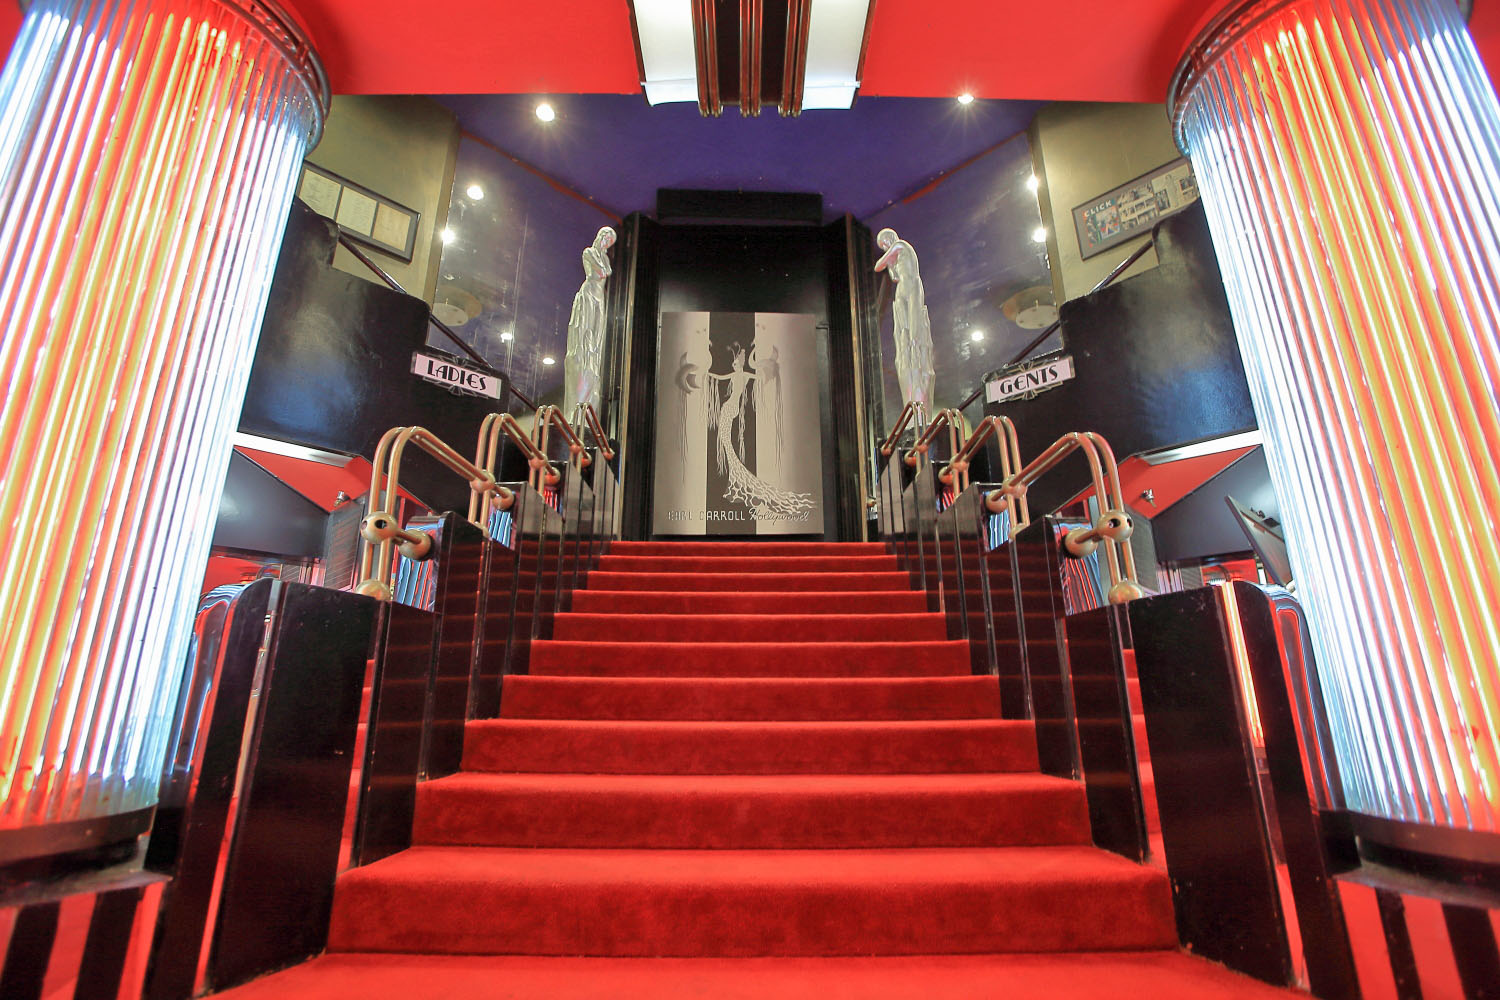 Red-carpeted stairs in the Art Deco style with glowing, lit-up columns.